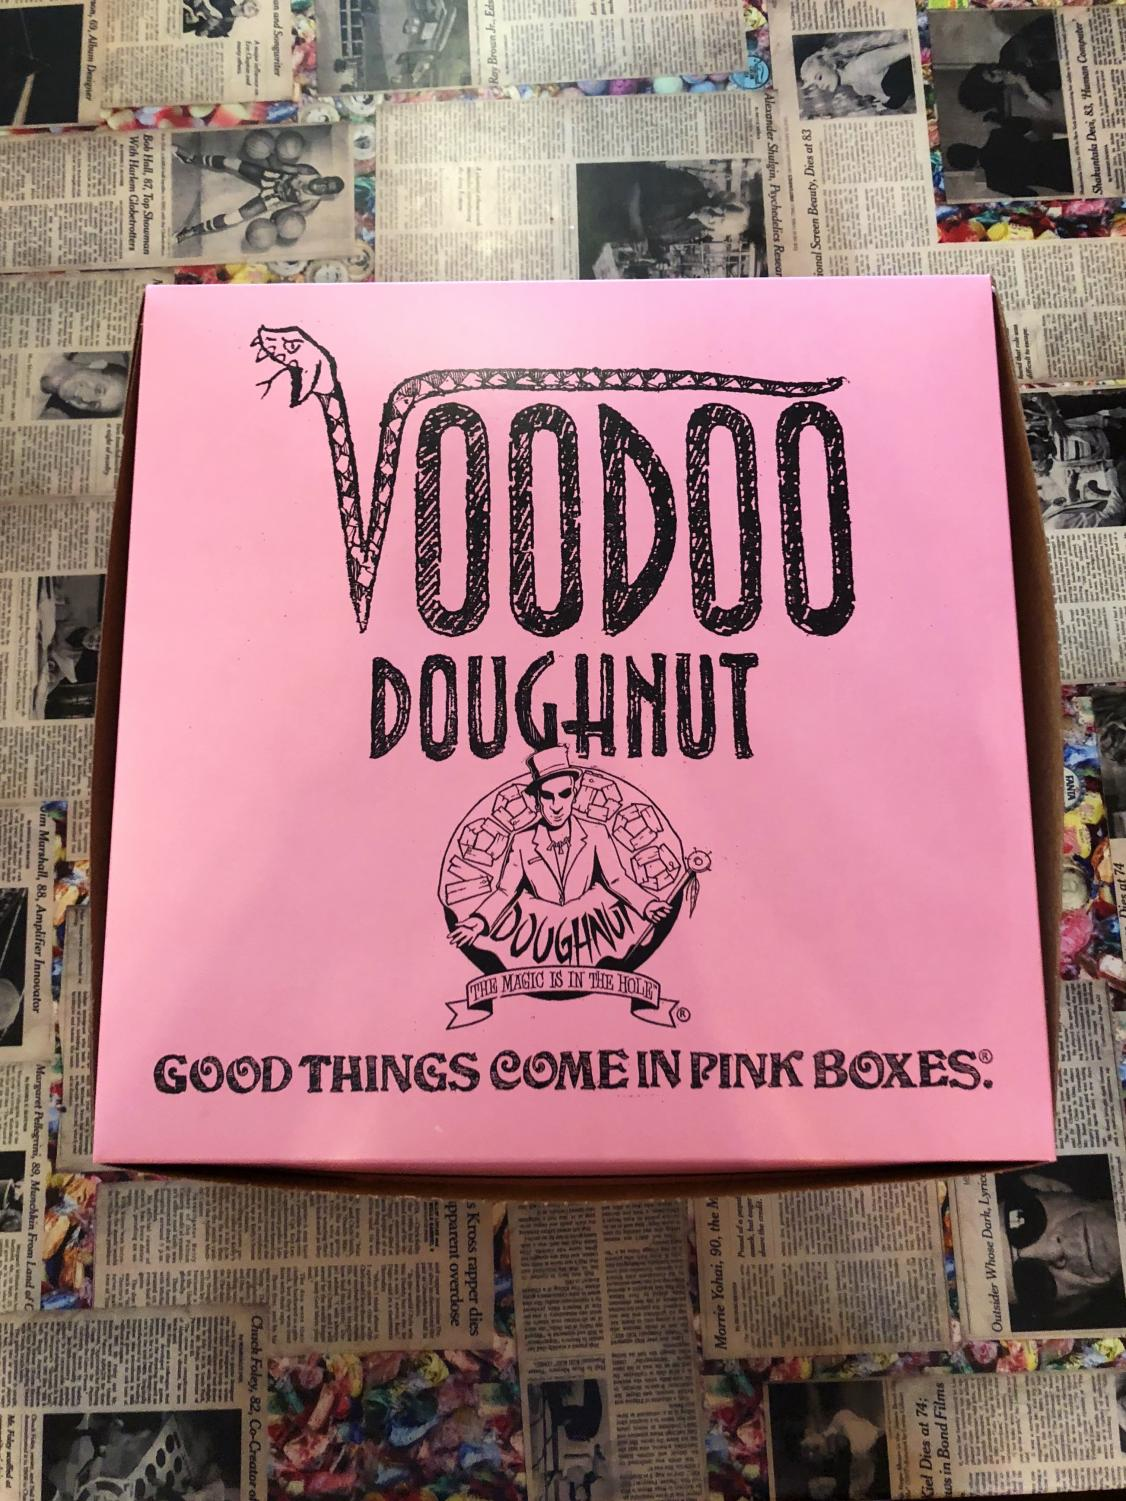 Voodoo+Doughnuts%3A+An+Authentic+Austin+Experience